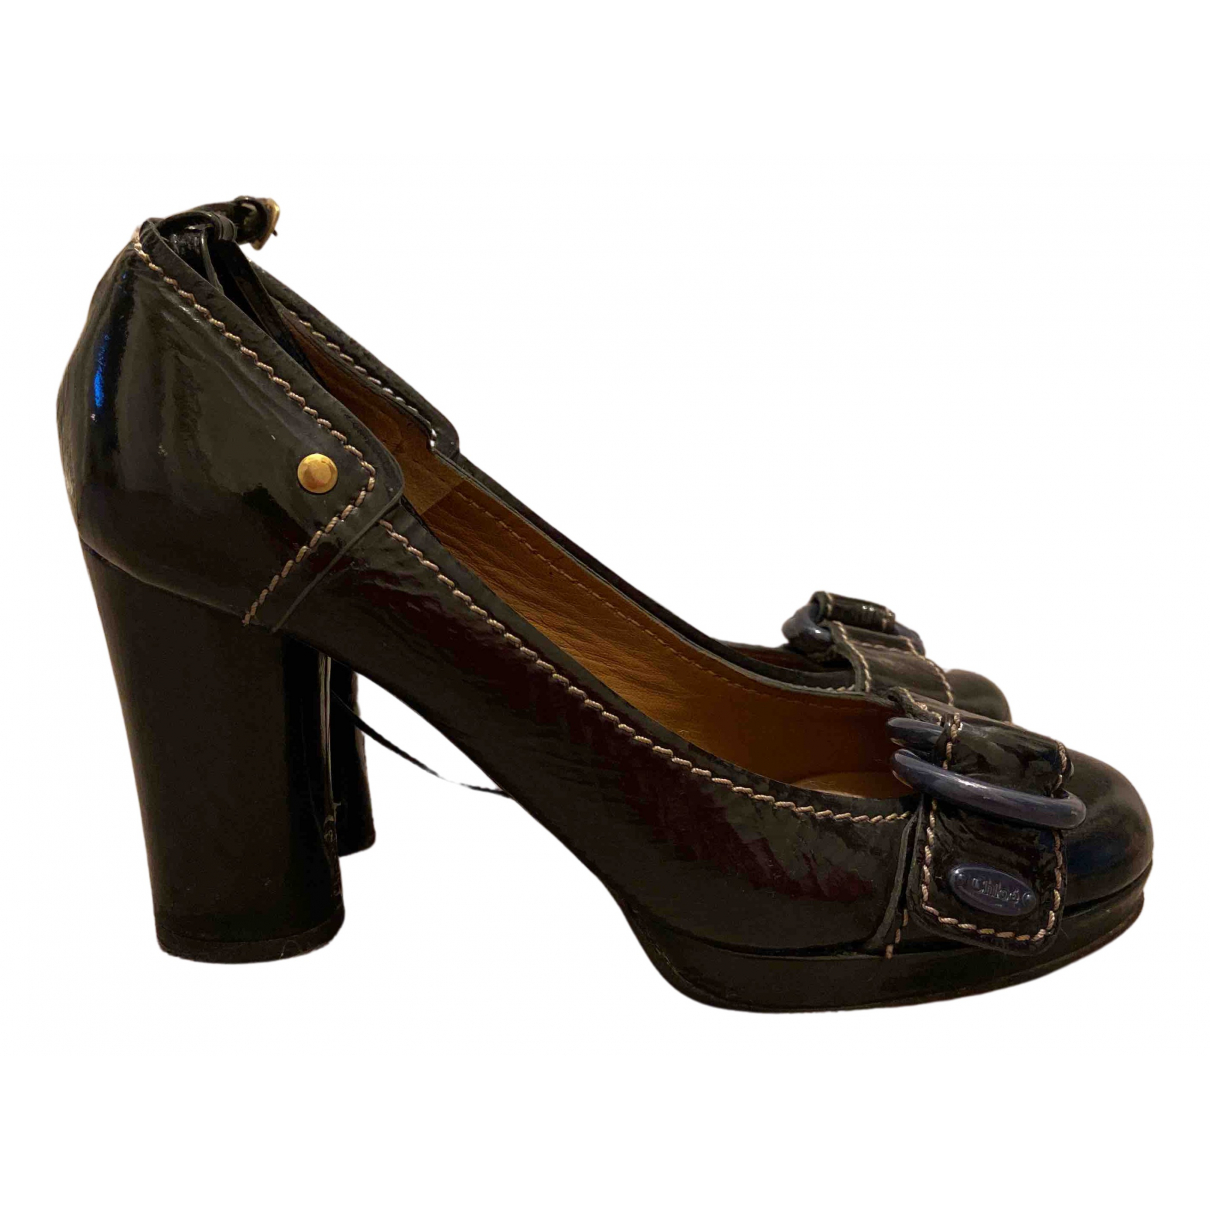 Chloé N Black Patent leather Heels for Women 38 IT